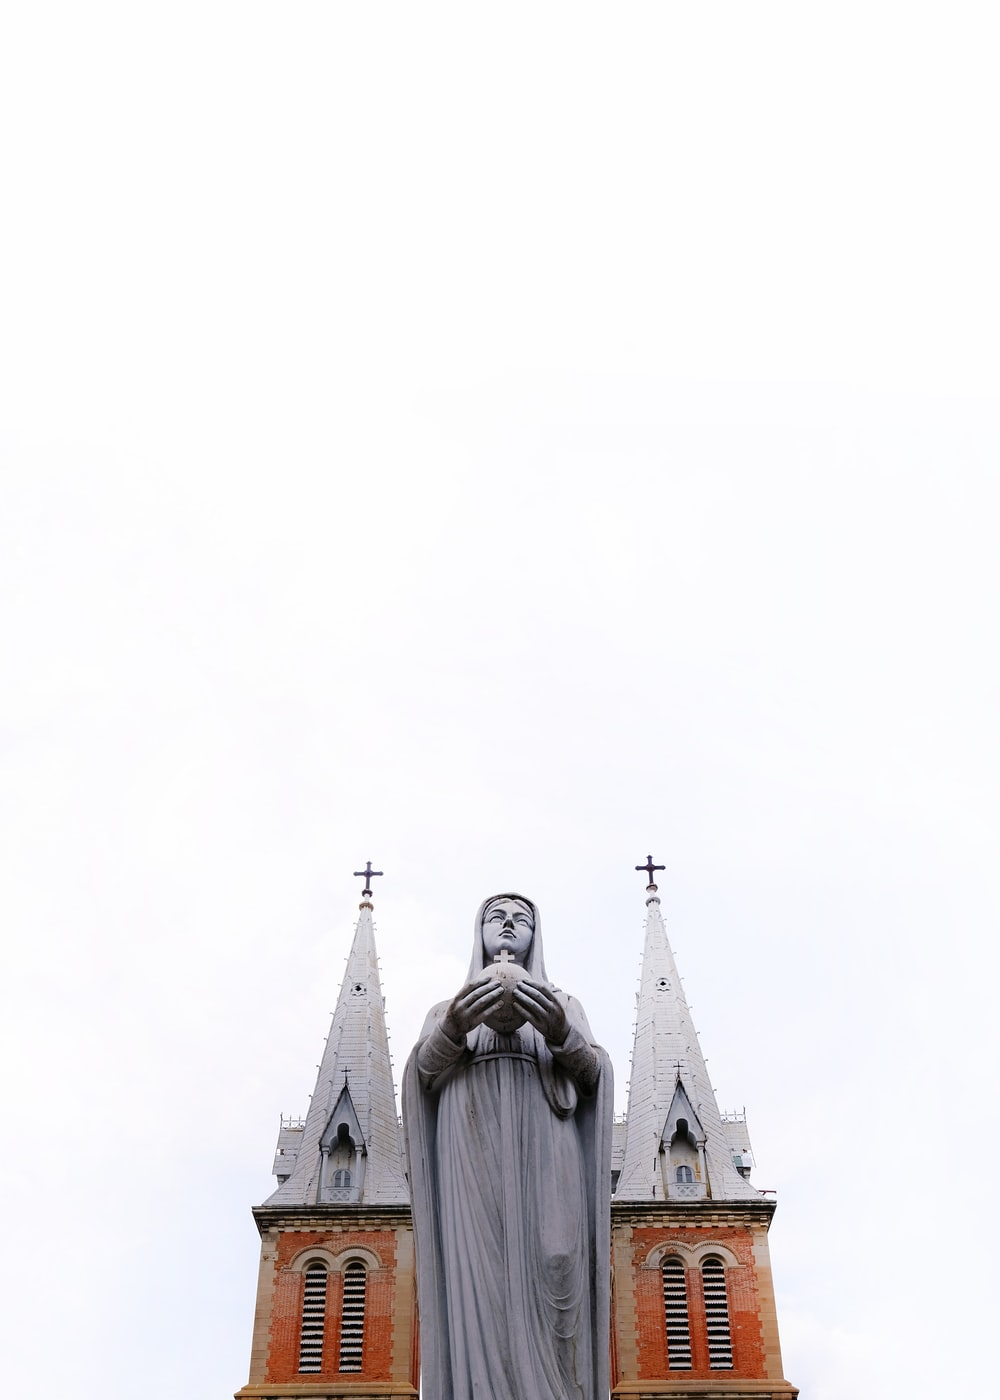 low-angle photography of religious sculpture outside cathedral during daytime